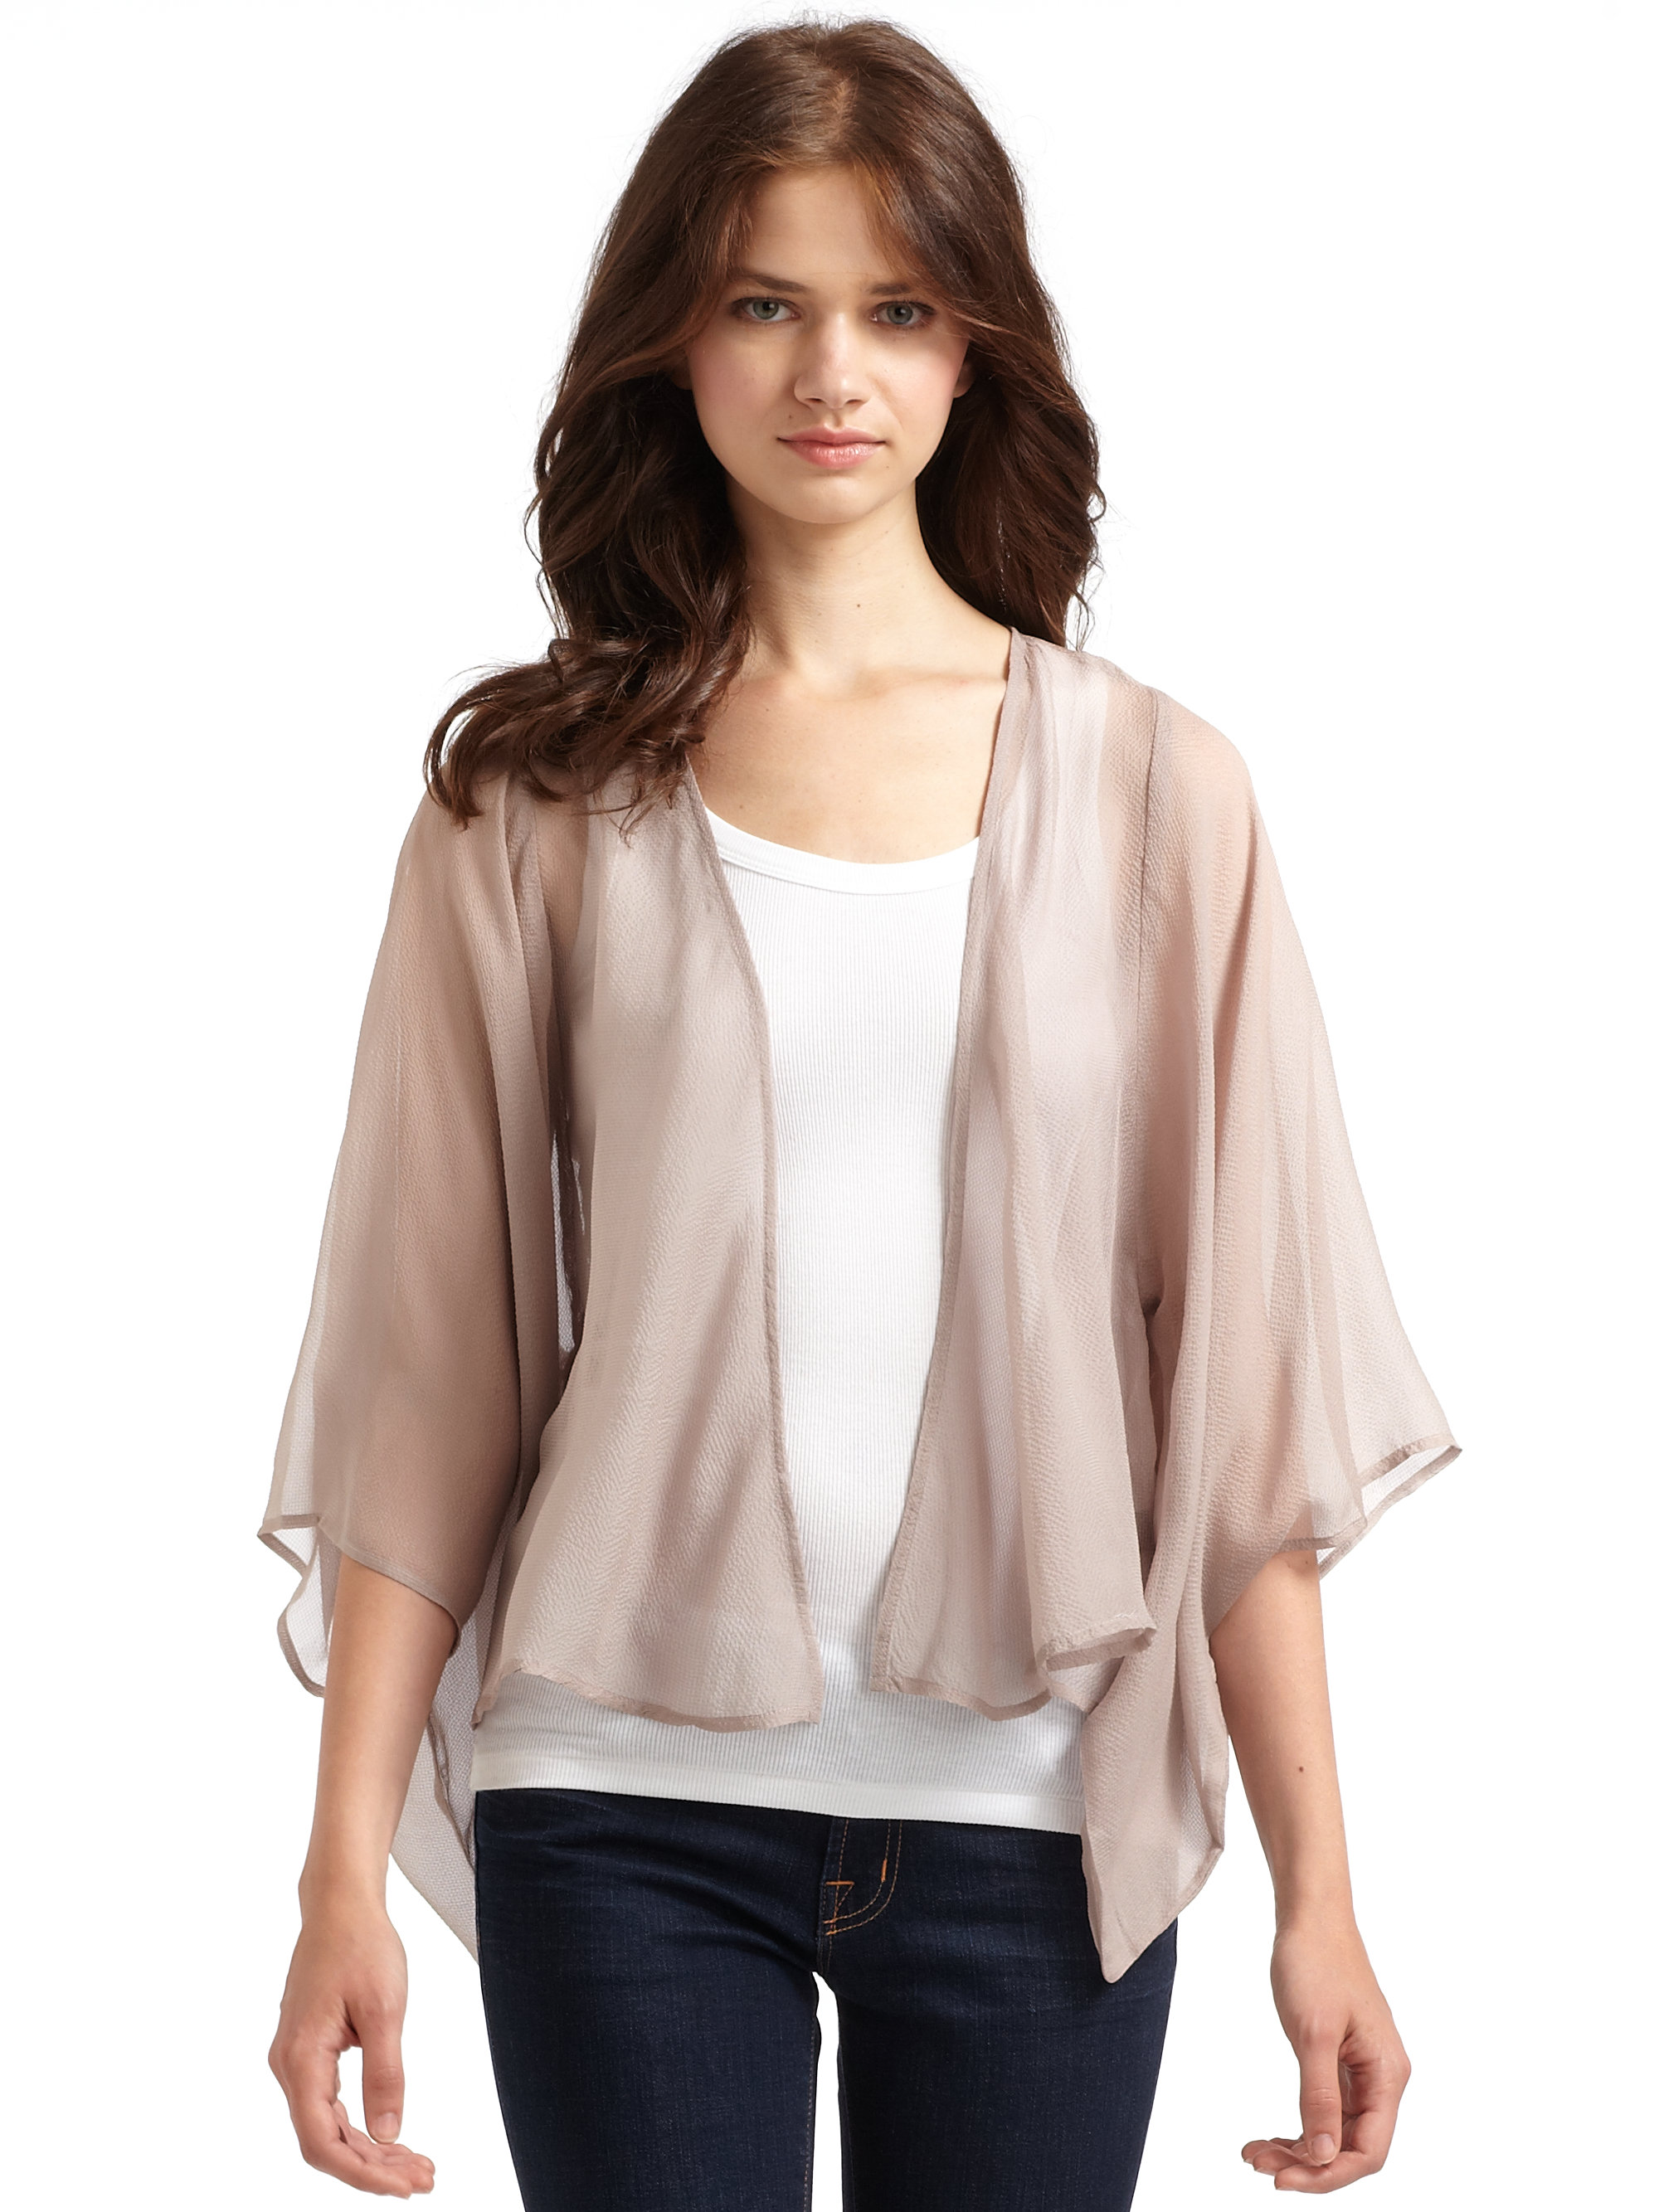 August Silk Women's Button Down Long Sleeve Crew Neck Silk Blend Cardigan. by August Silk. $ - $ $ 30 $ 36 FREE Shipping on eligible orders. out of 5 stars 6. Product Features Long sleeve Crewneck Cardigan With Button Closure.